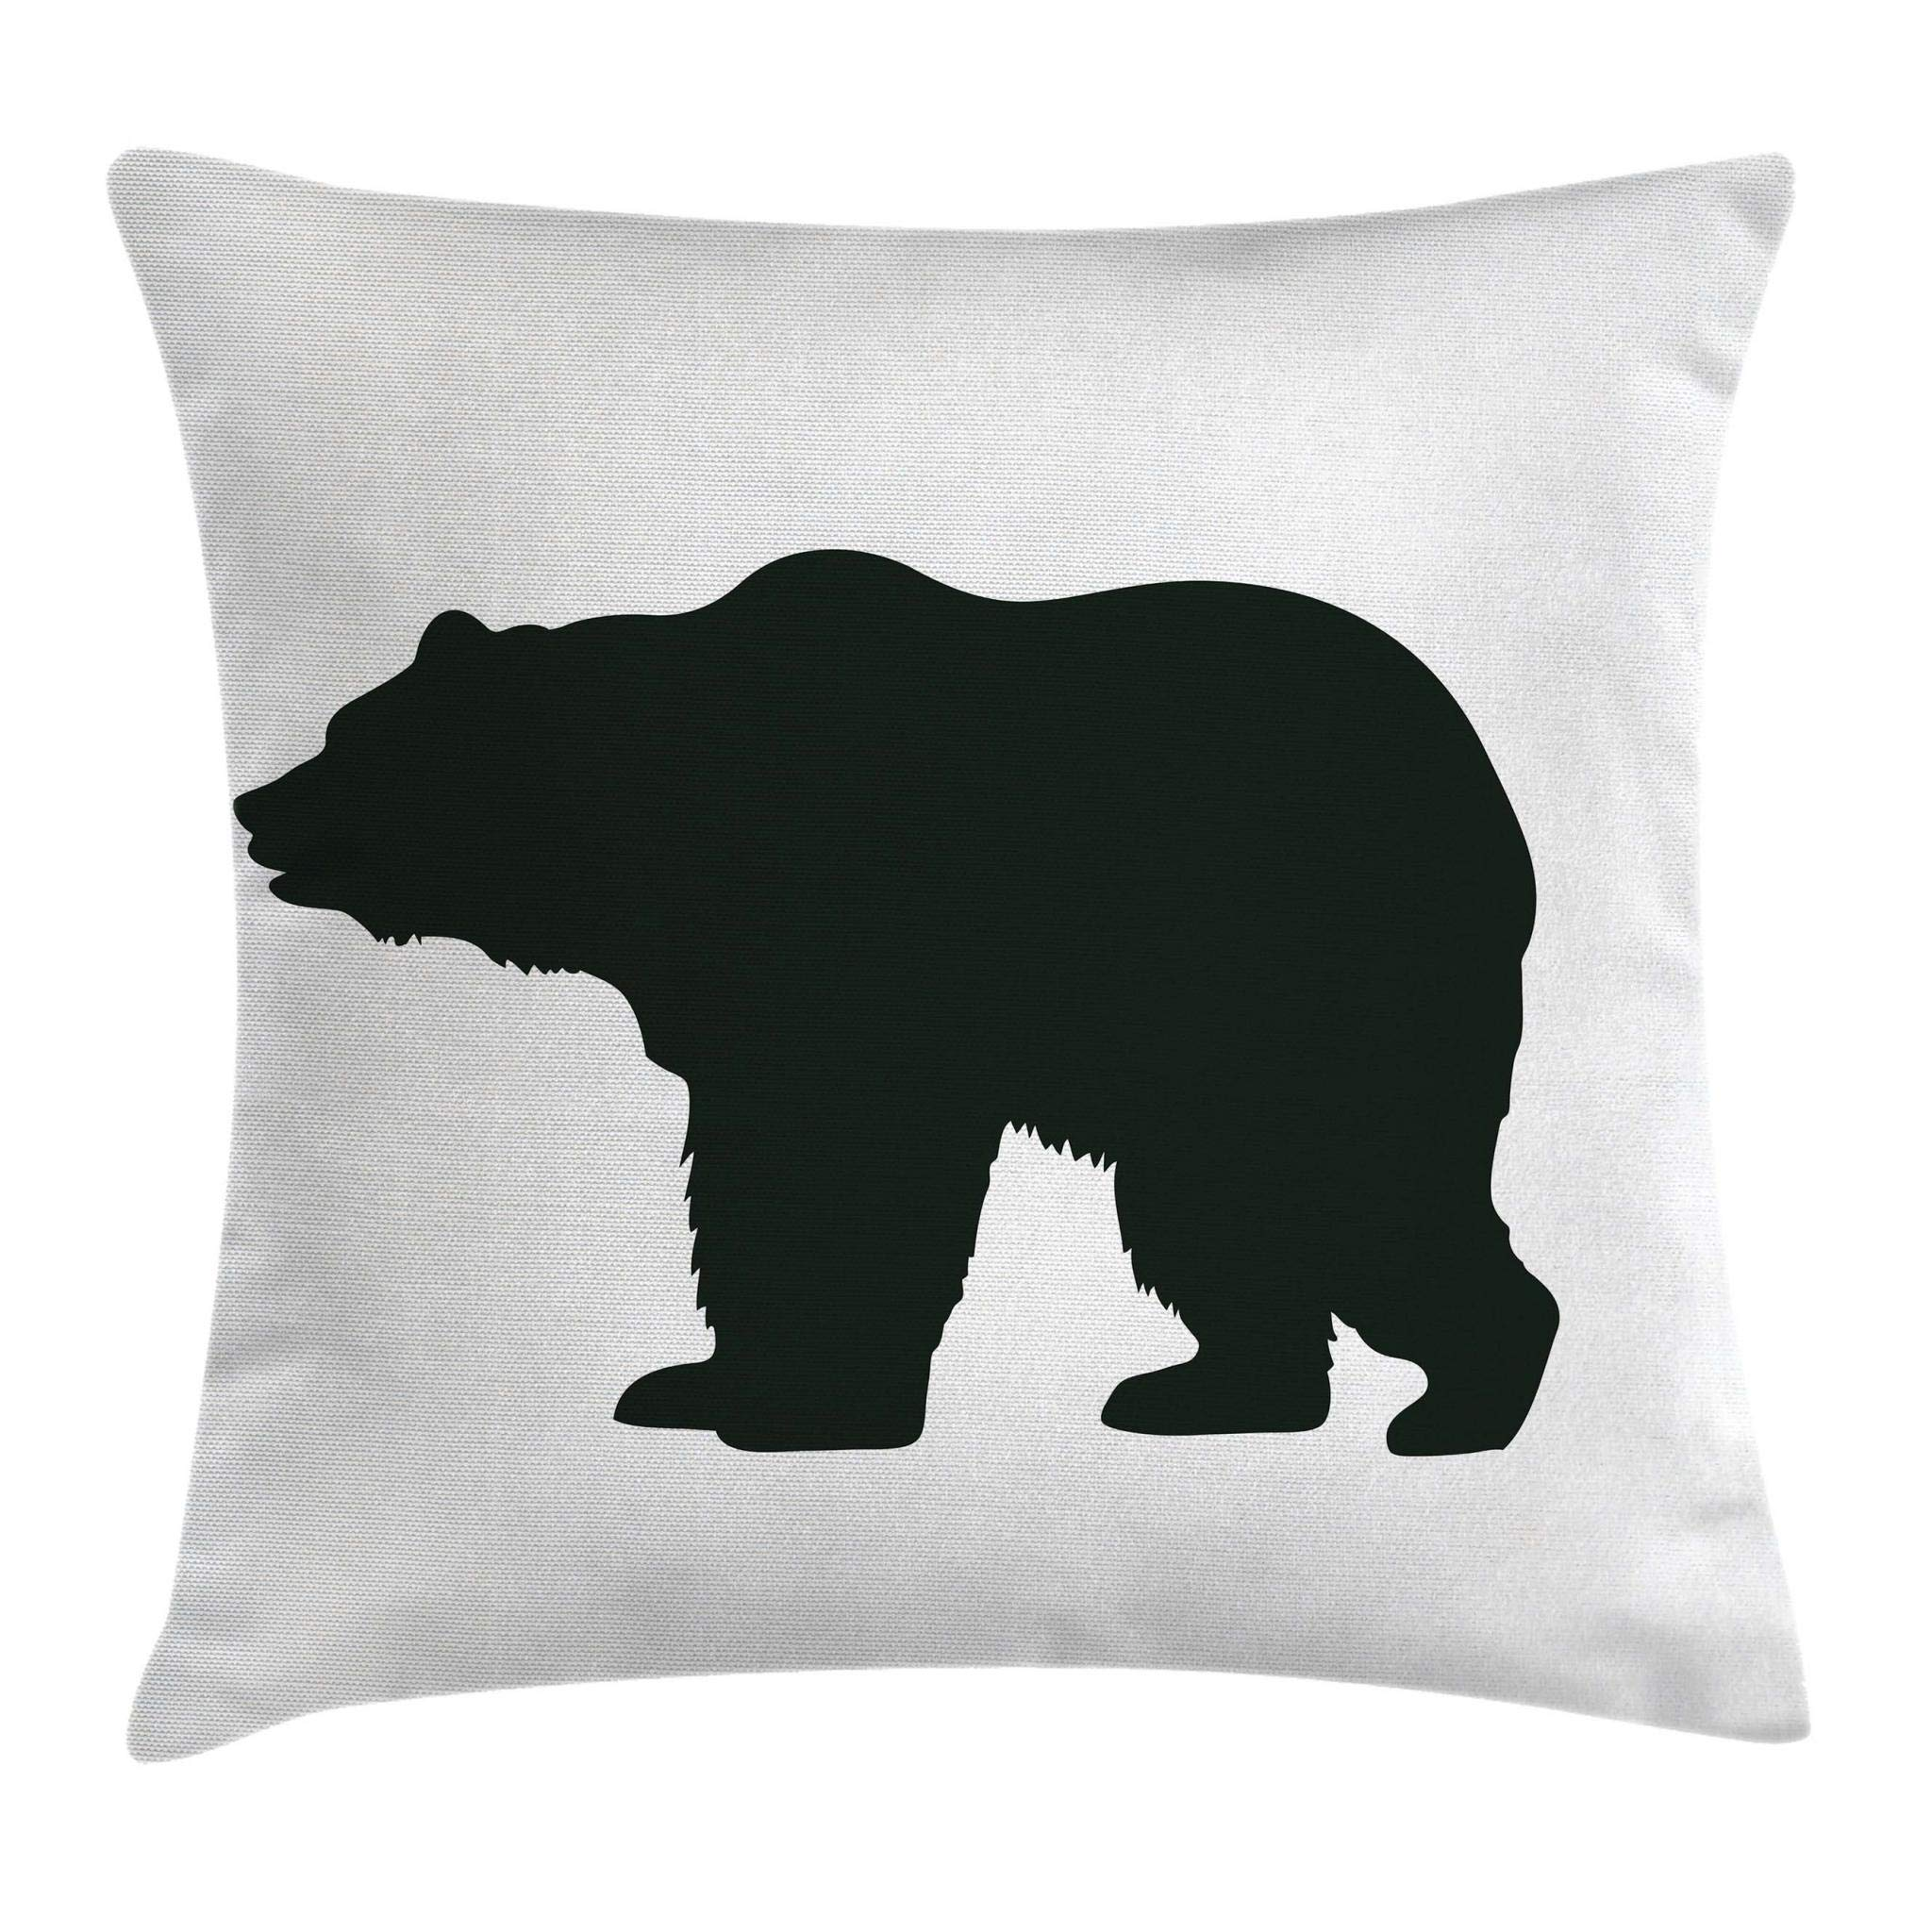 Ambesonne Nature Throw Pillow Cushion Cover, Grizzly Alaskan Bear Animal Wildlife Forest Mountain Canadian Artwork Image, Decorative Square Accent Pillow Case, 16 X 16 Inches, Black and White